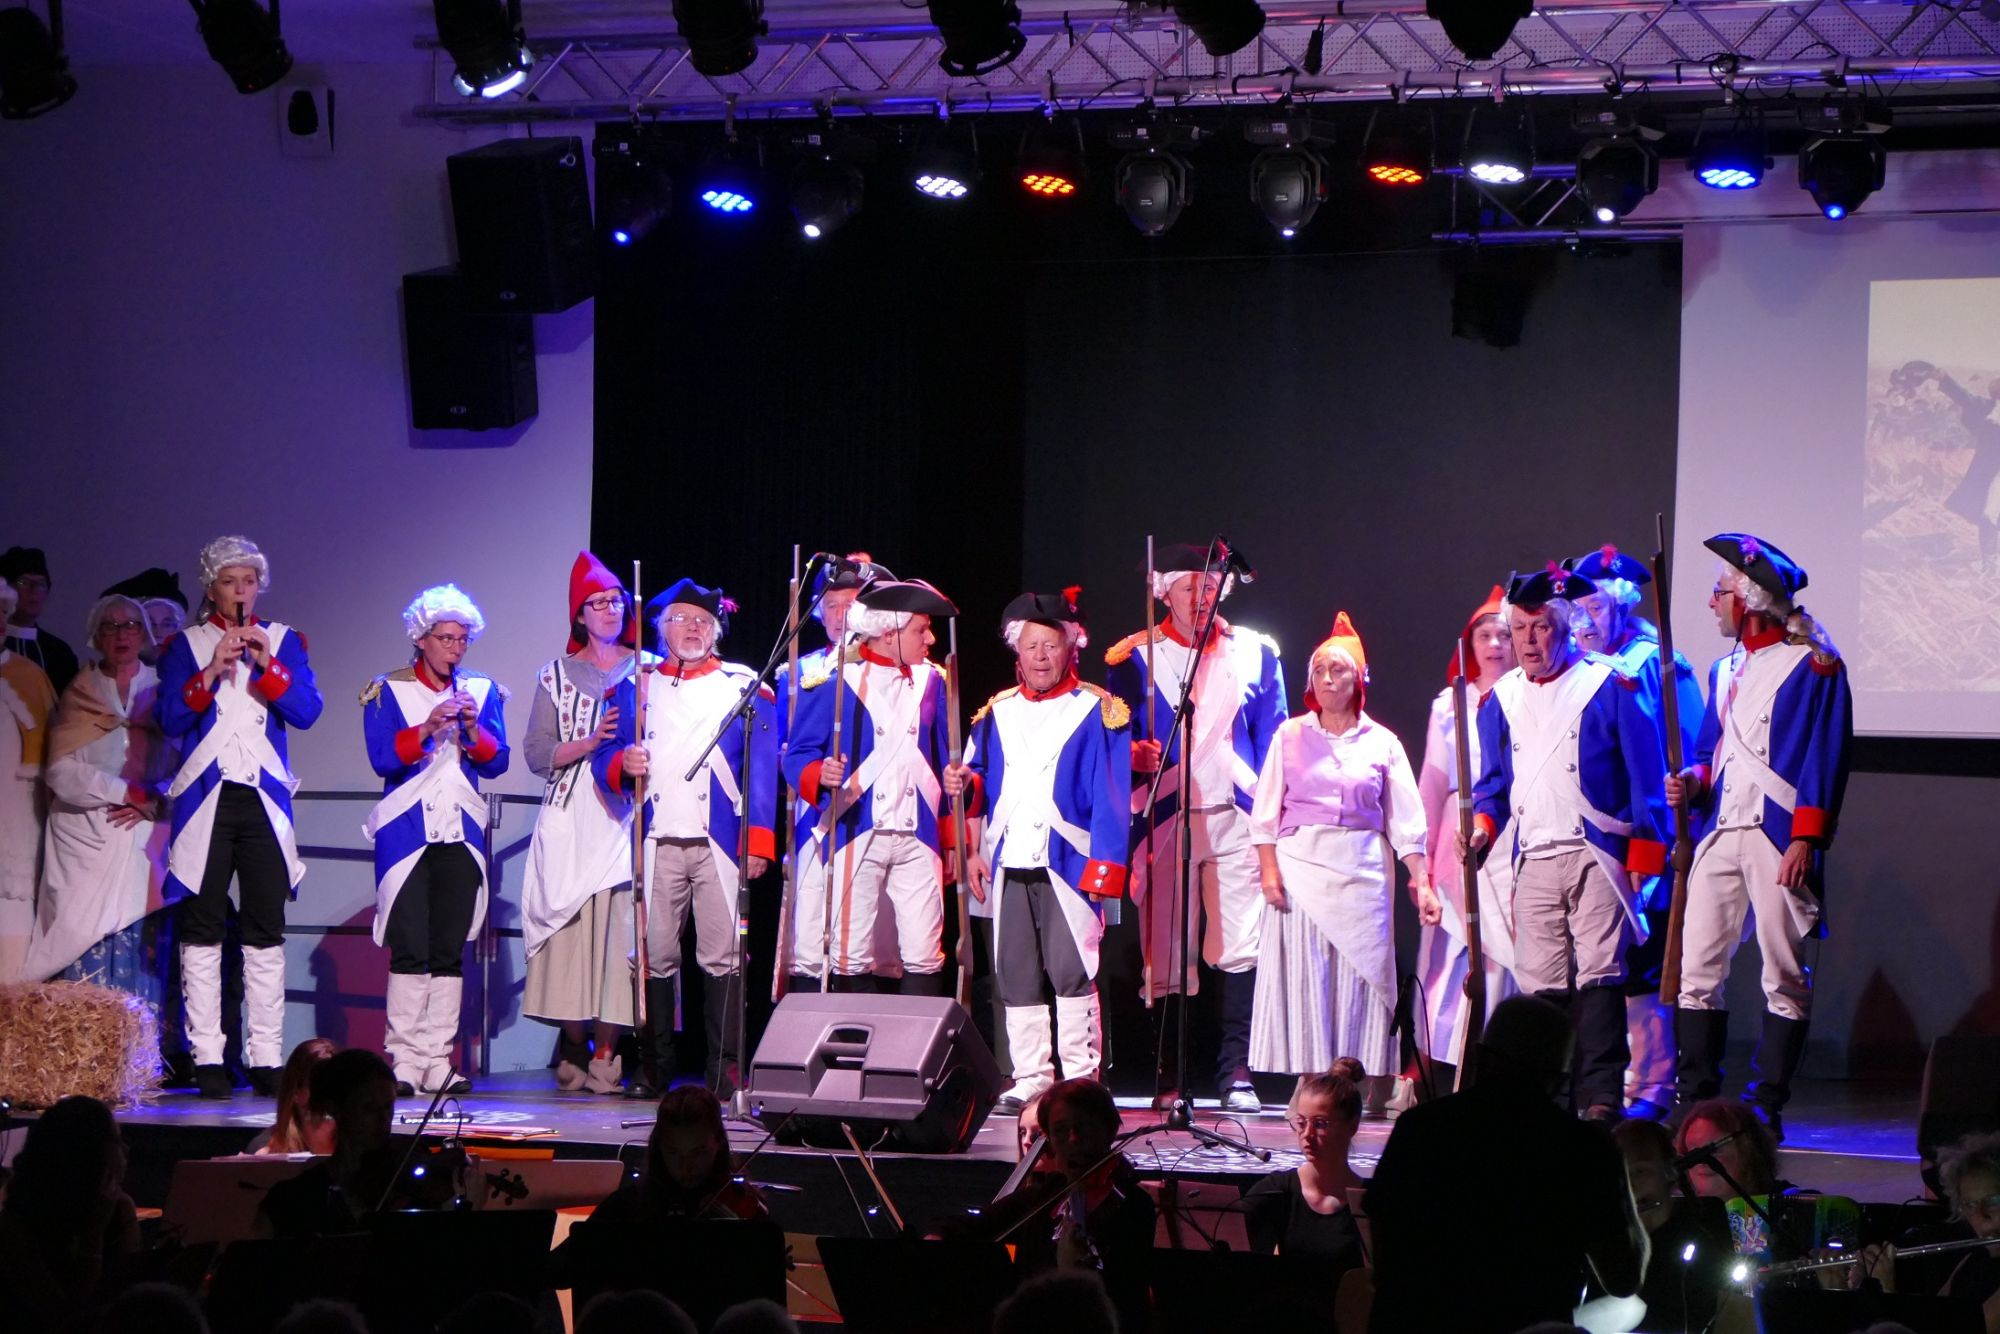 20190613_revolution_spectacle_1_17